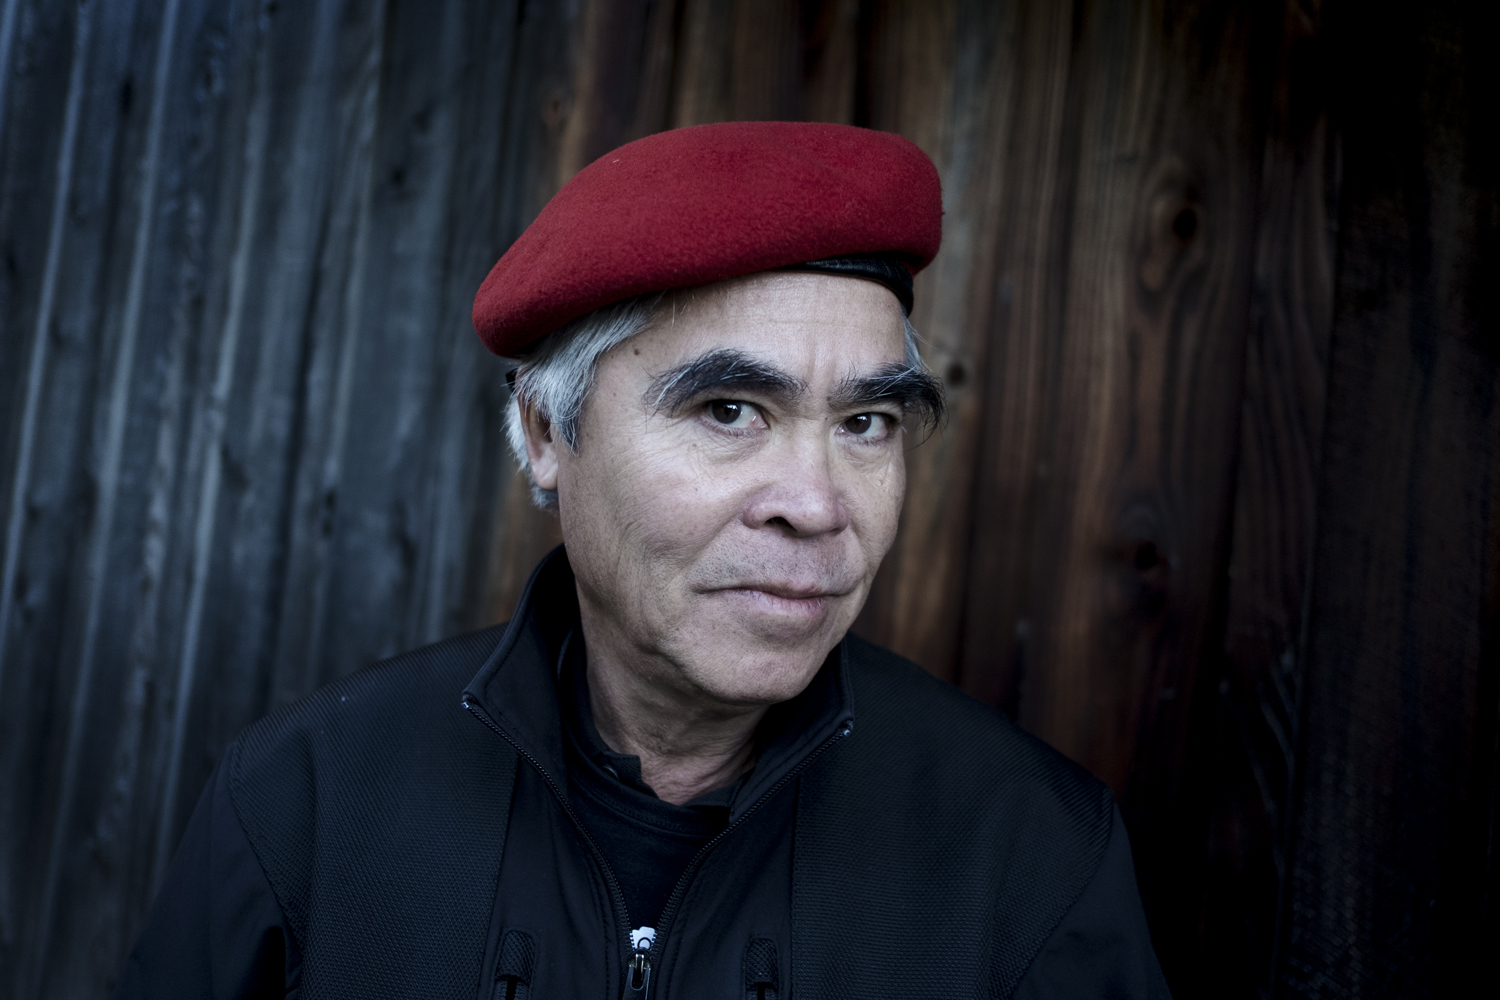 Nick Ut poses for a portrait at Eddie Adams Workshop XXIX, Photo: Ann Sophie Lindström